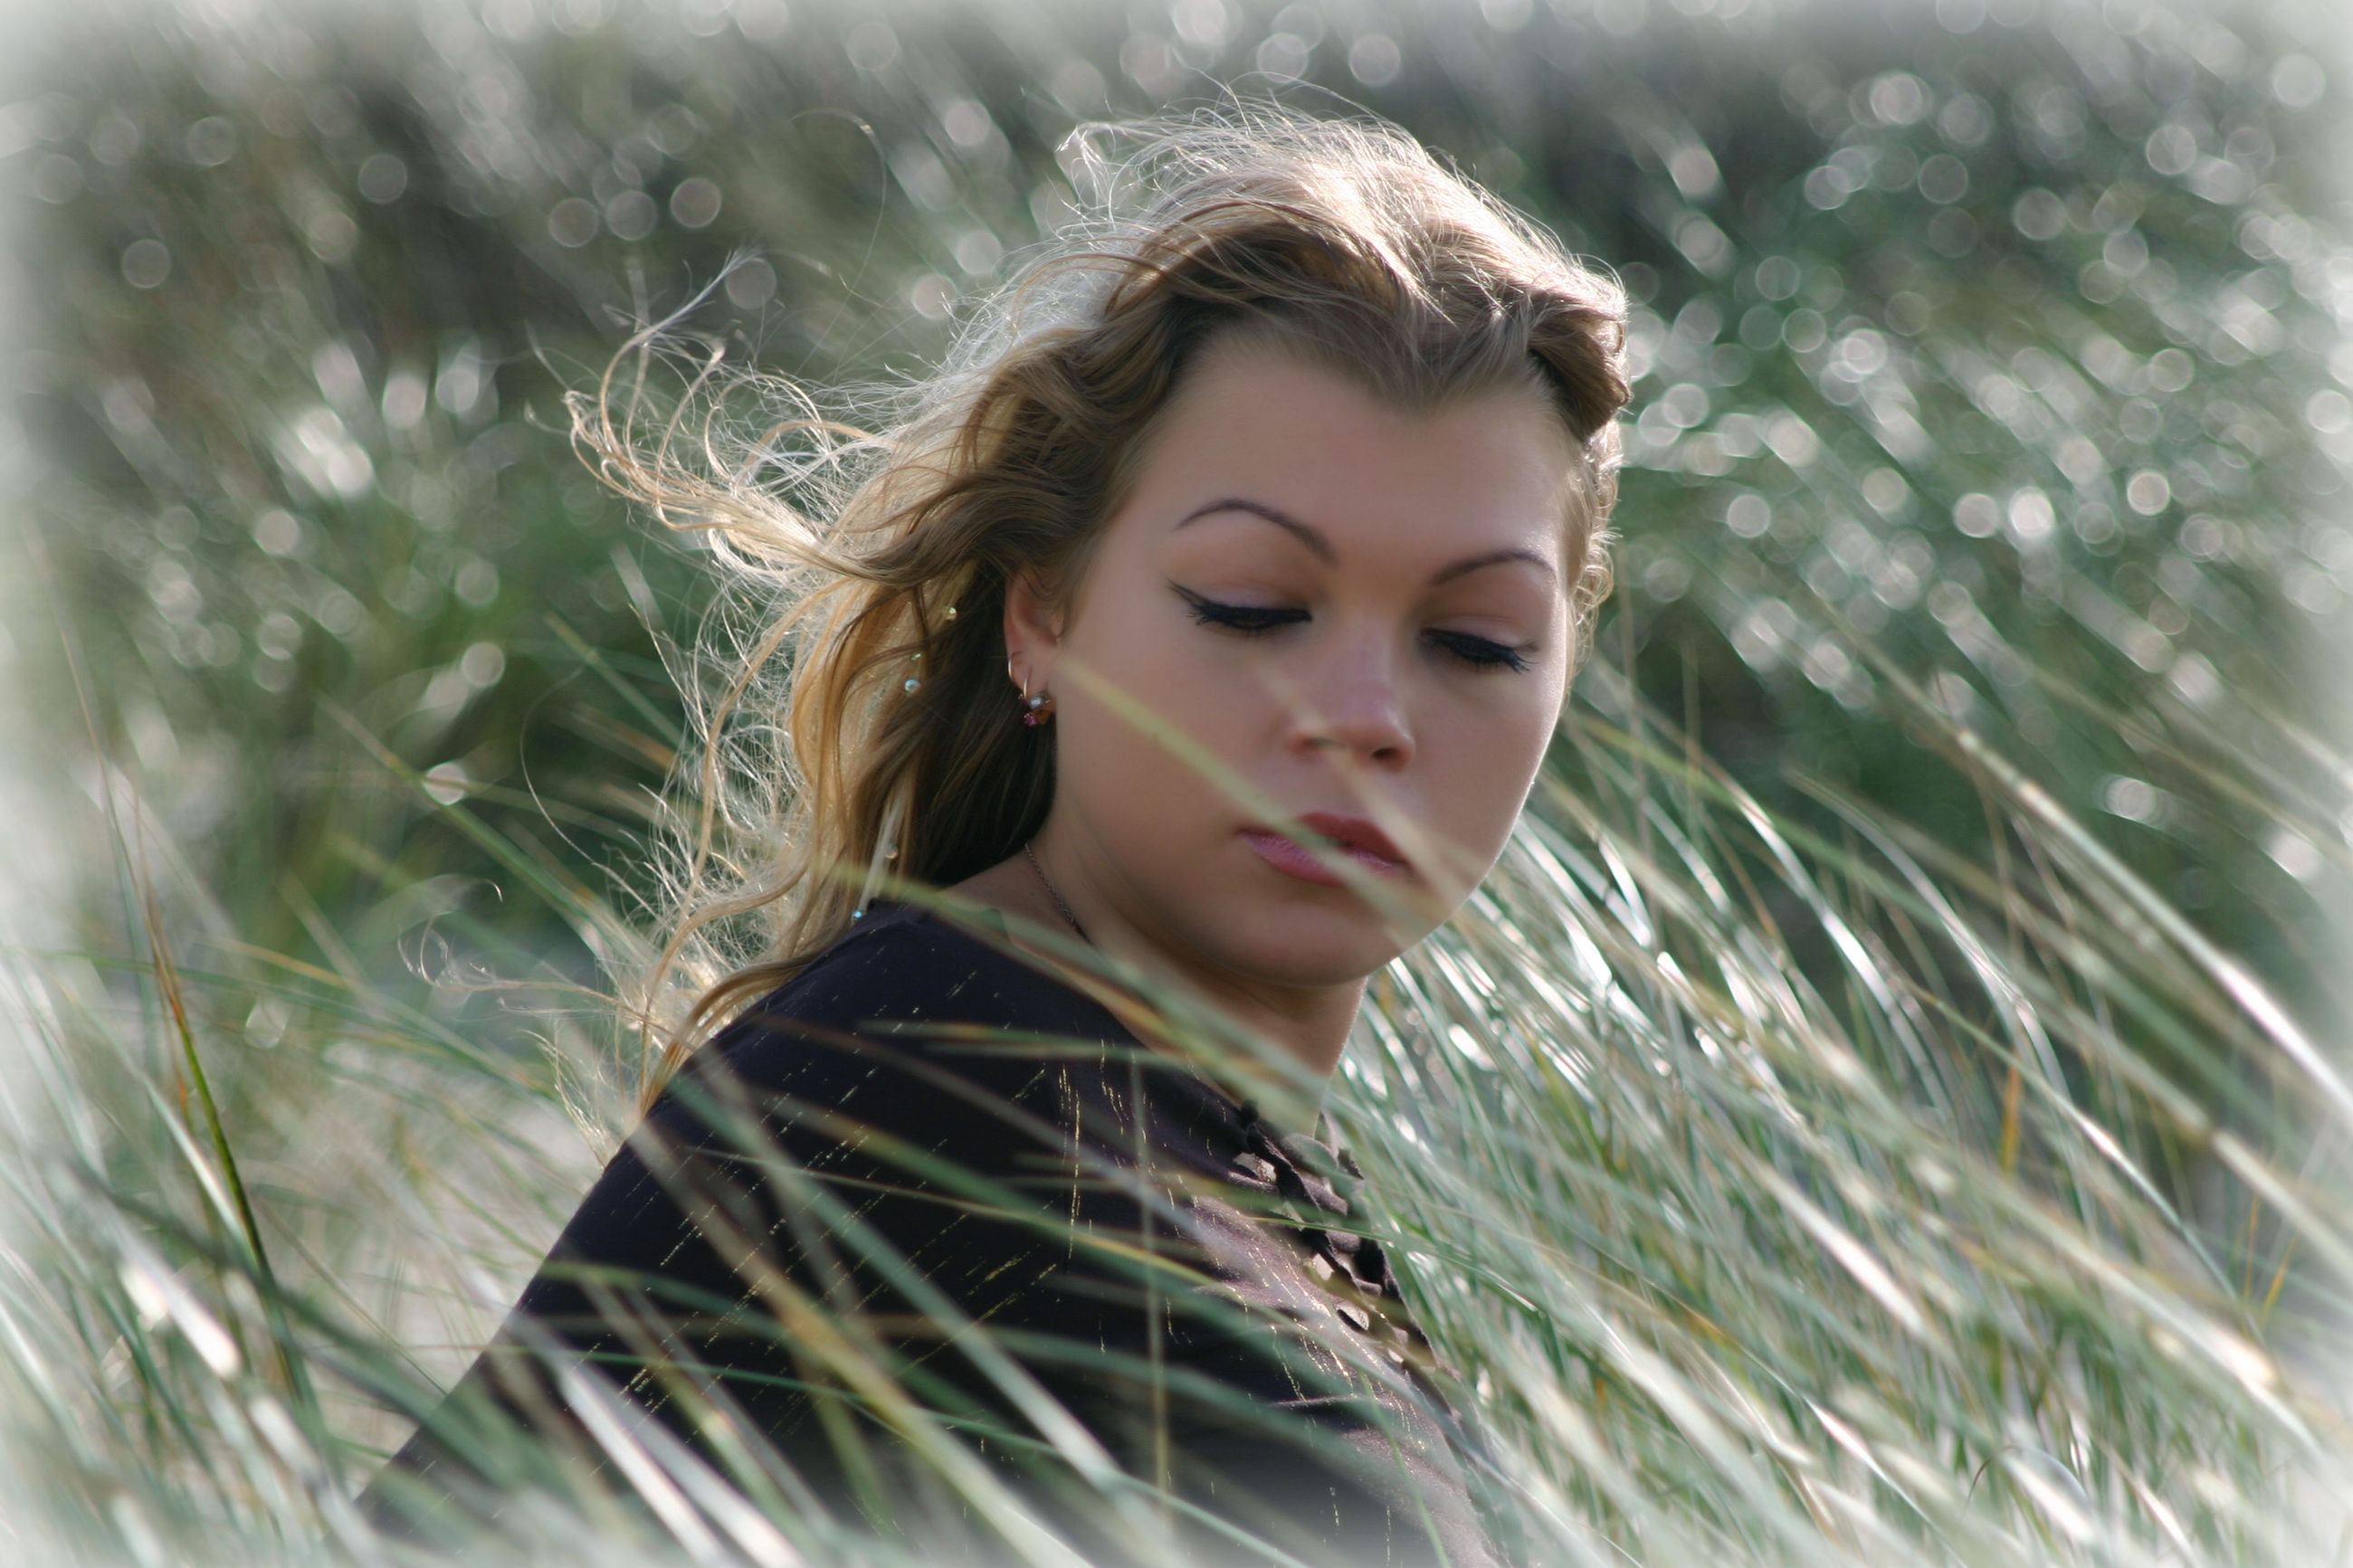 young adult, young women, one person, beautiful woman, headshot, outdoors, nature, day, real people, close-up